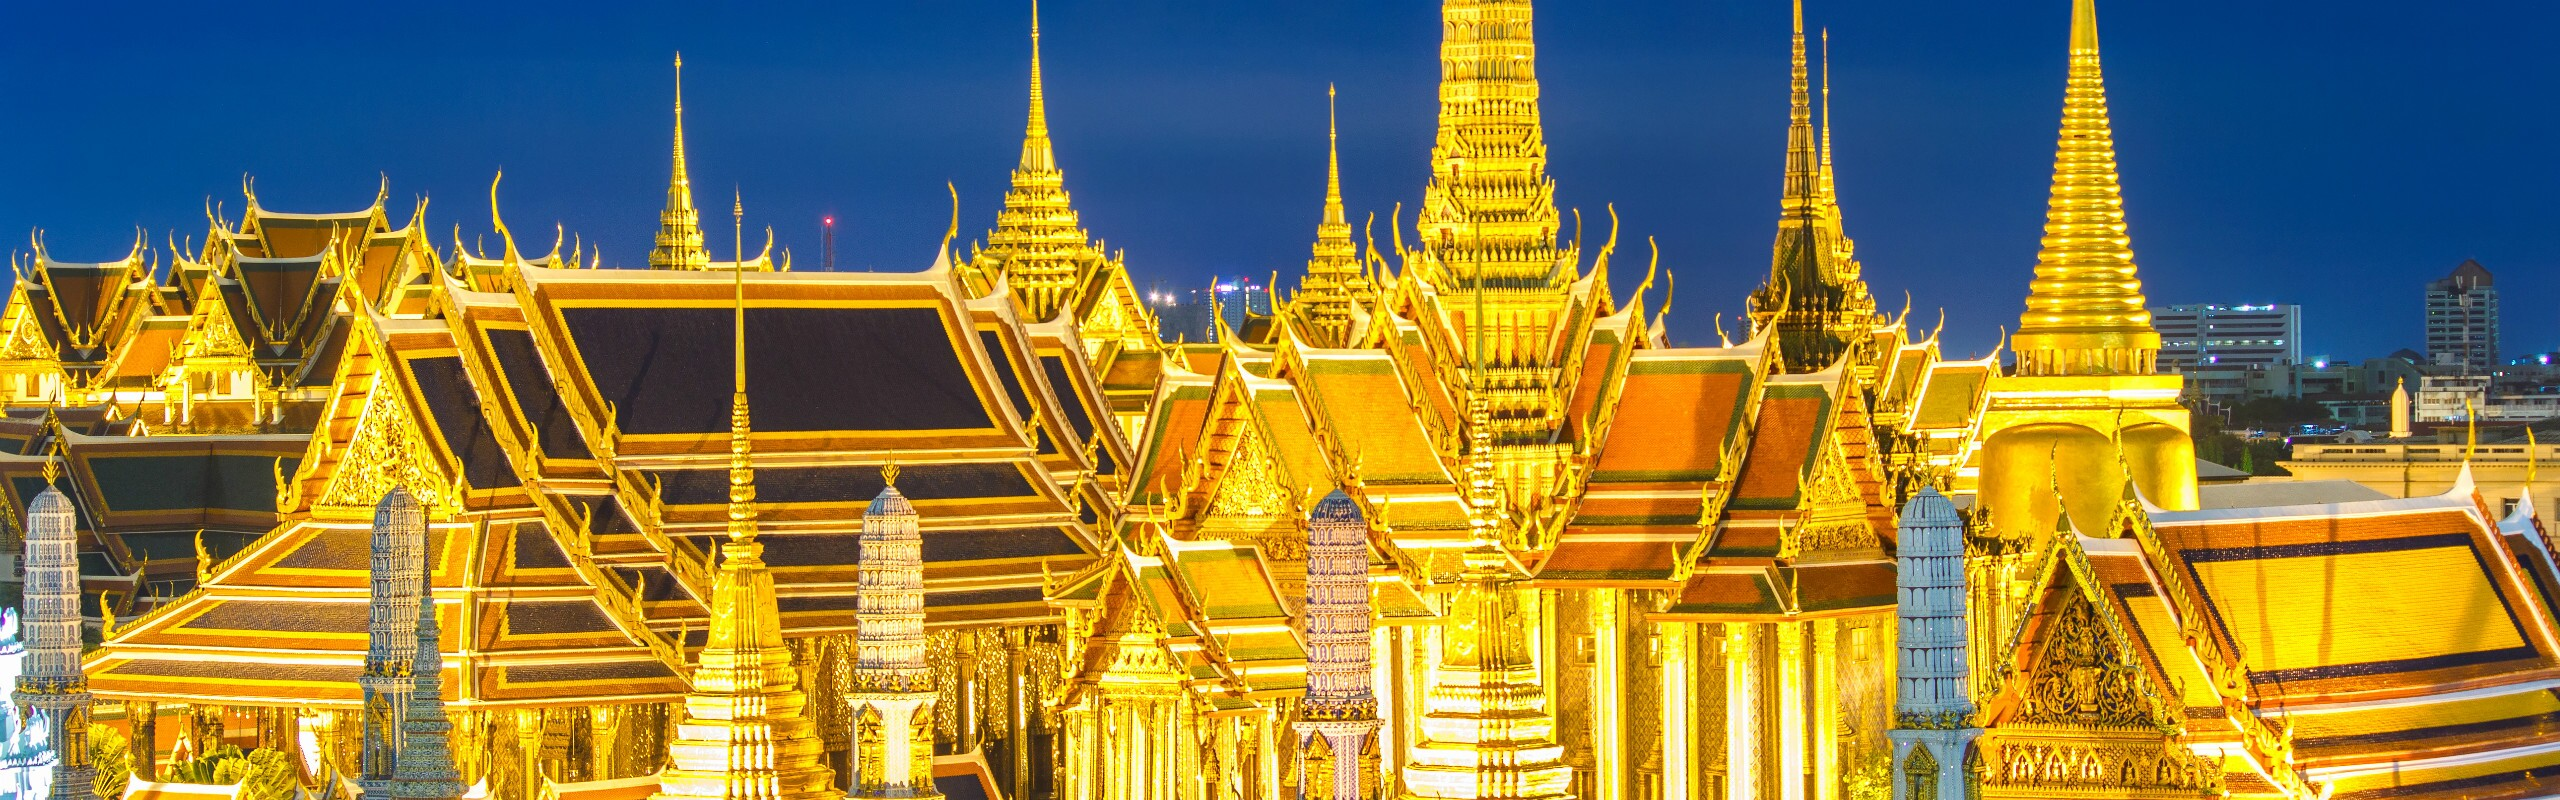 15-Day China and Thailand Highlights Tour